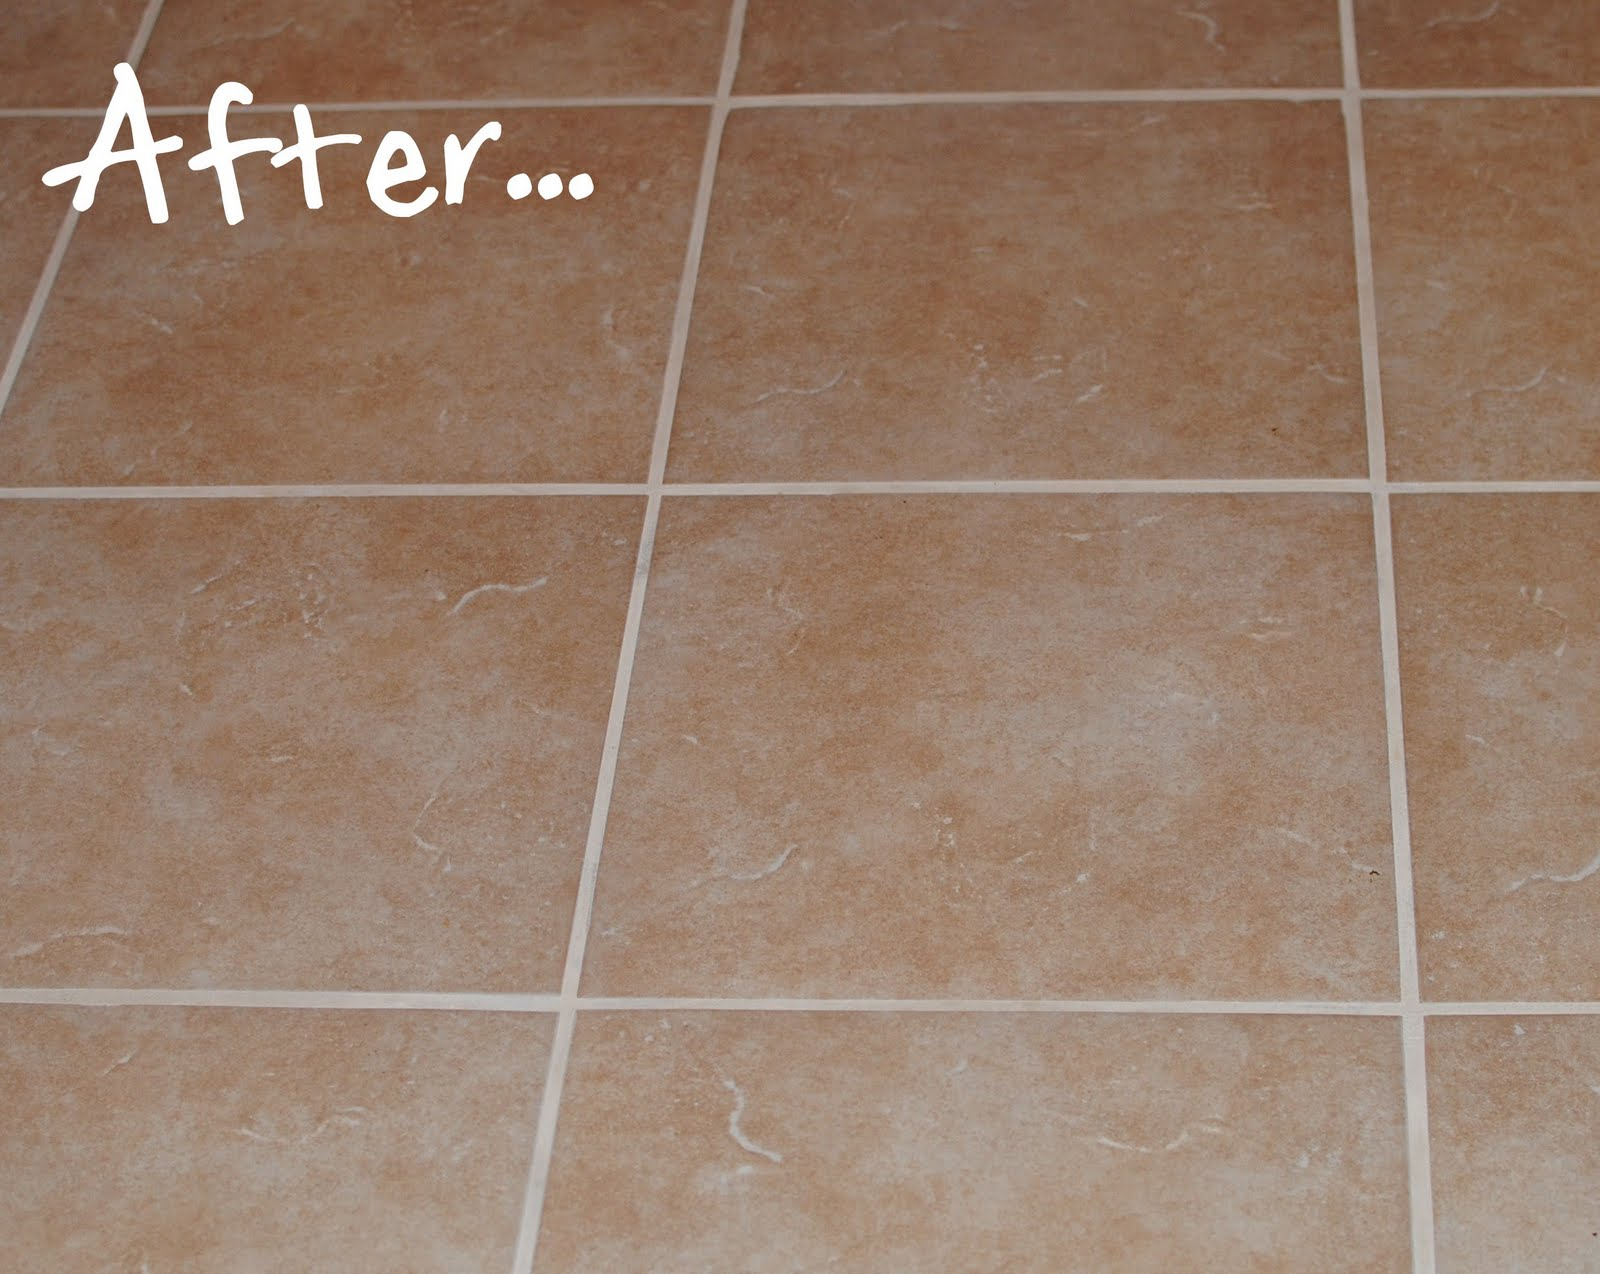 How to redo grout in tiled floor